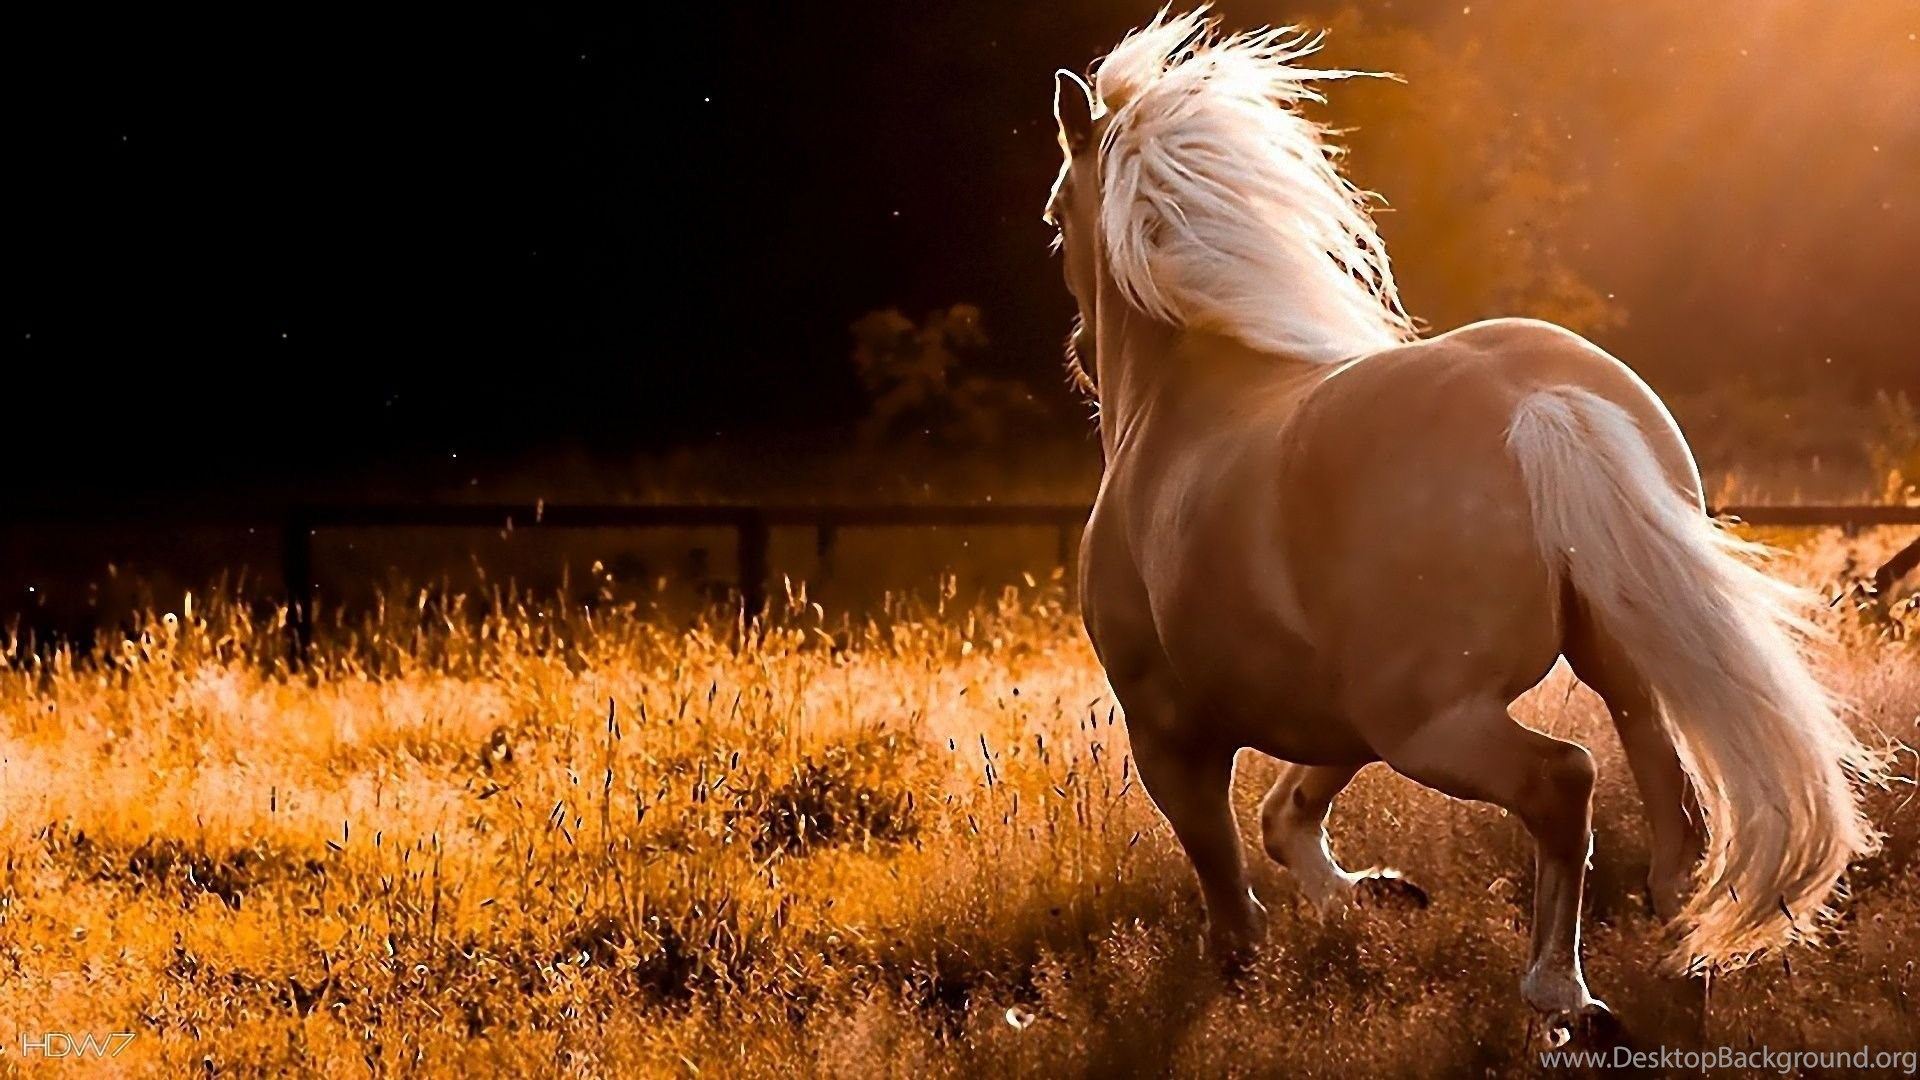 White Running Horse Wallpapers Desktop Background